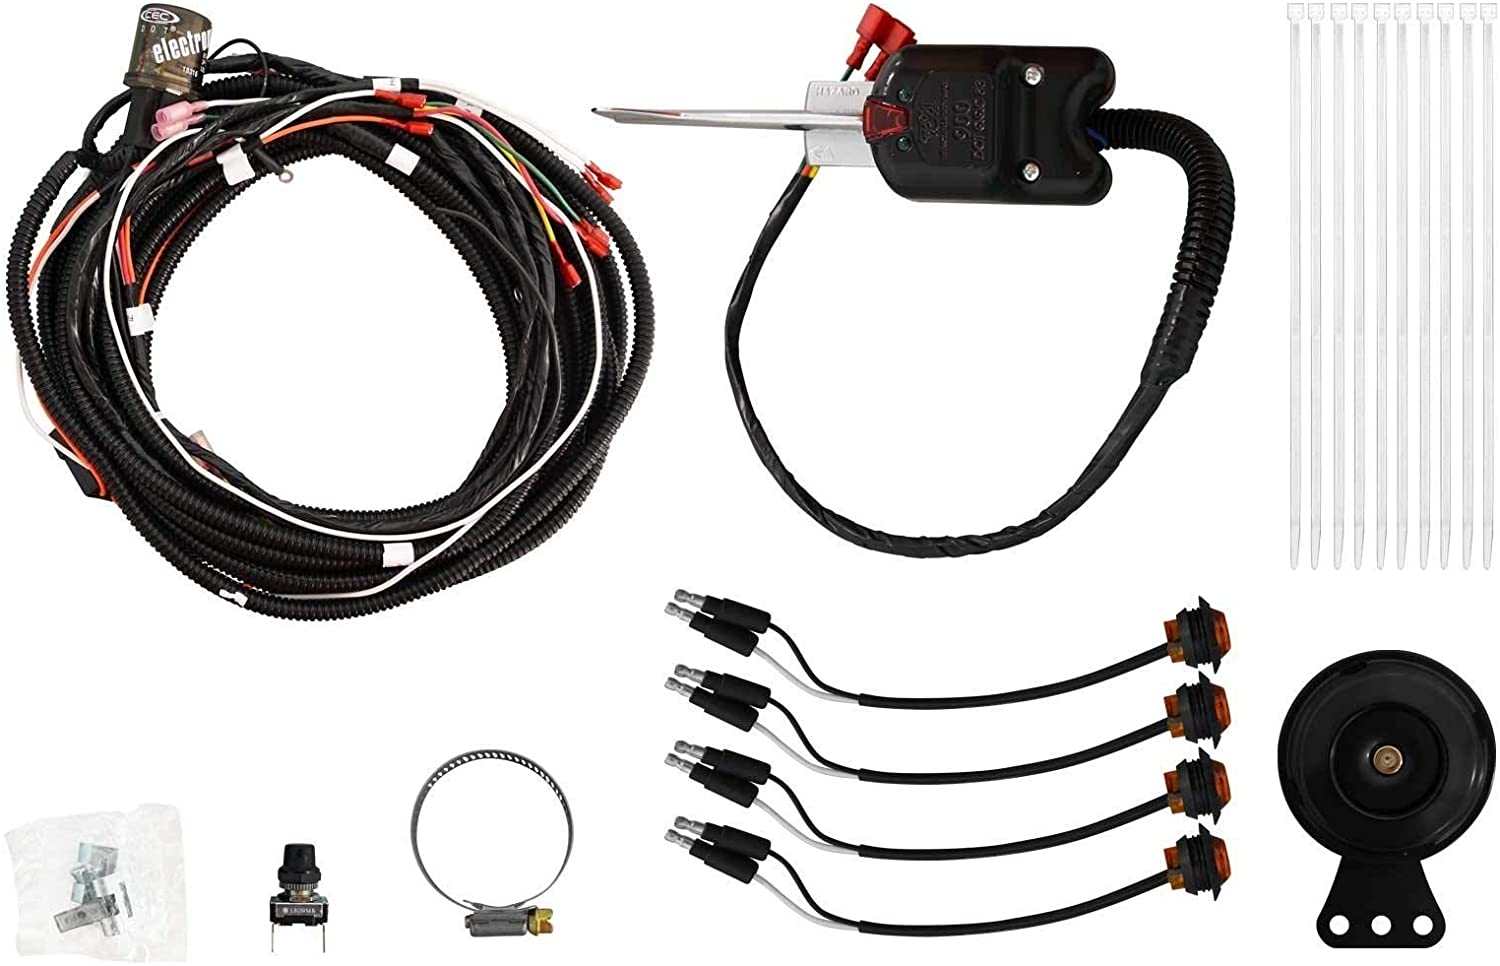 SuperATV Turn Signal Kit for Polaris RZR RS1 (2018+) - (with Steering Column and Dash Horn) - Plug and Play for Easy Installation!